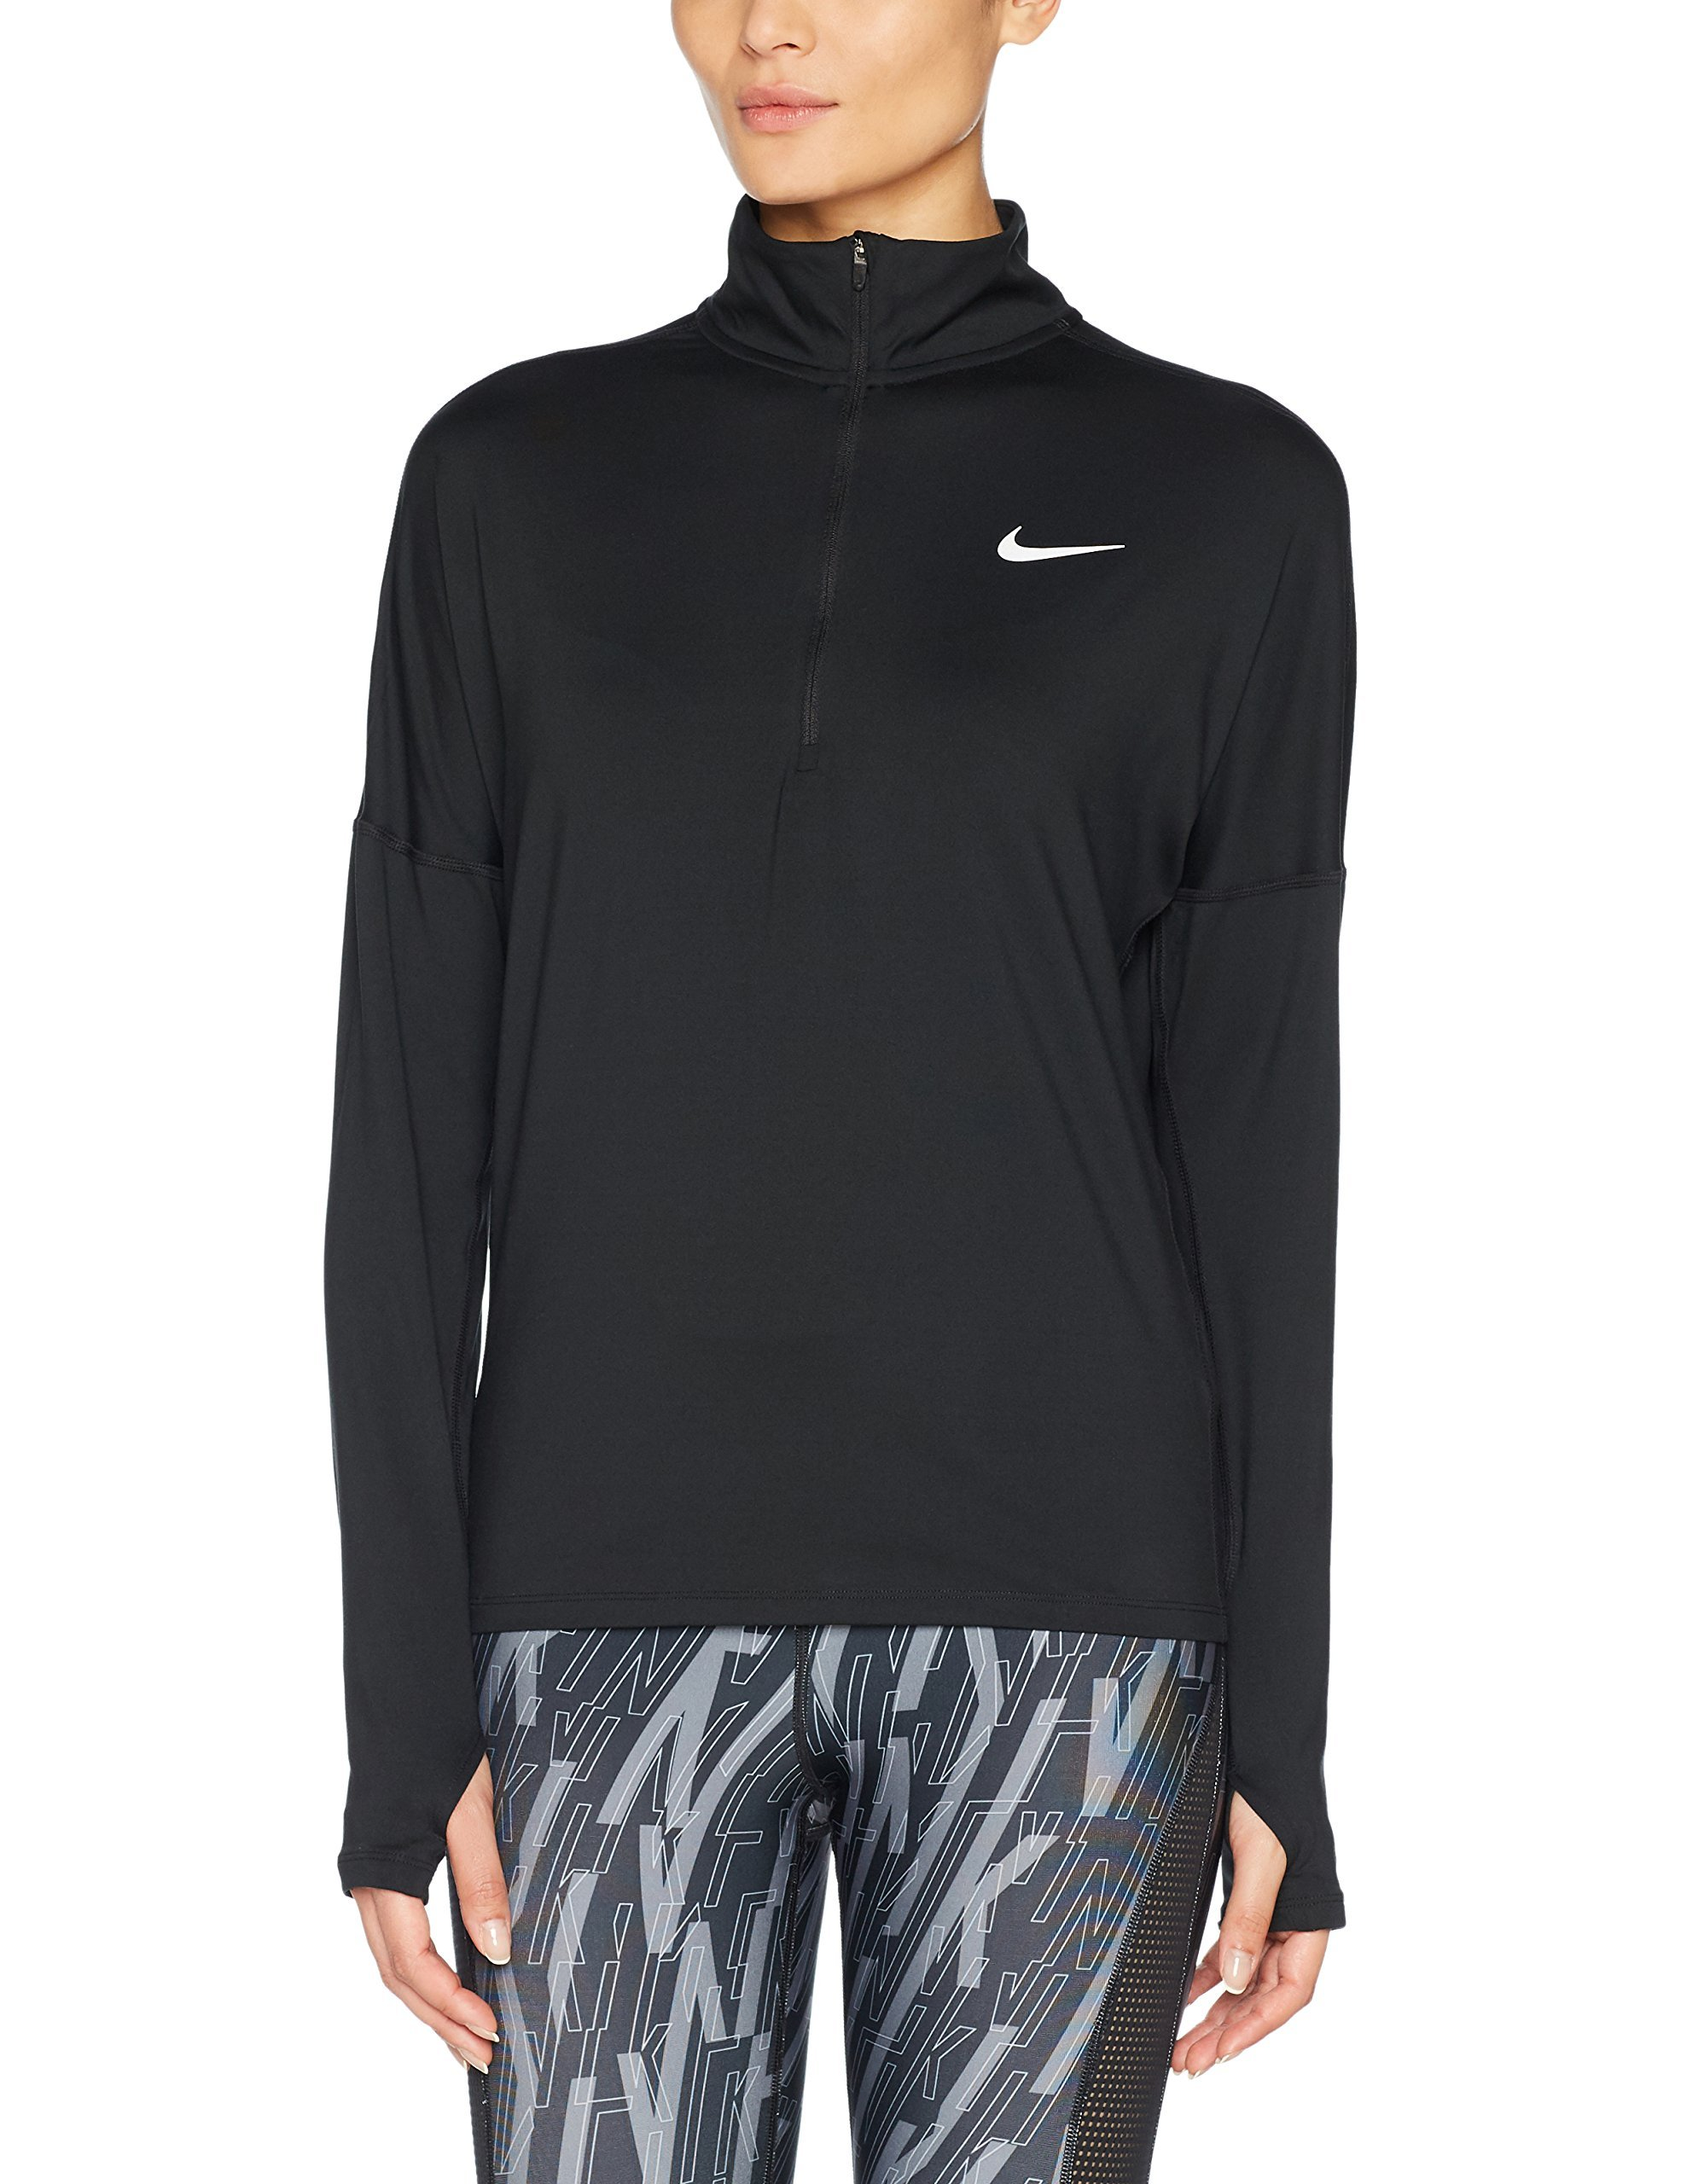 Nike Women's Dry Element Running Top Black Size Small by Nike (Image #1)